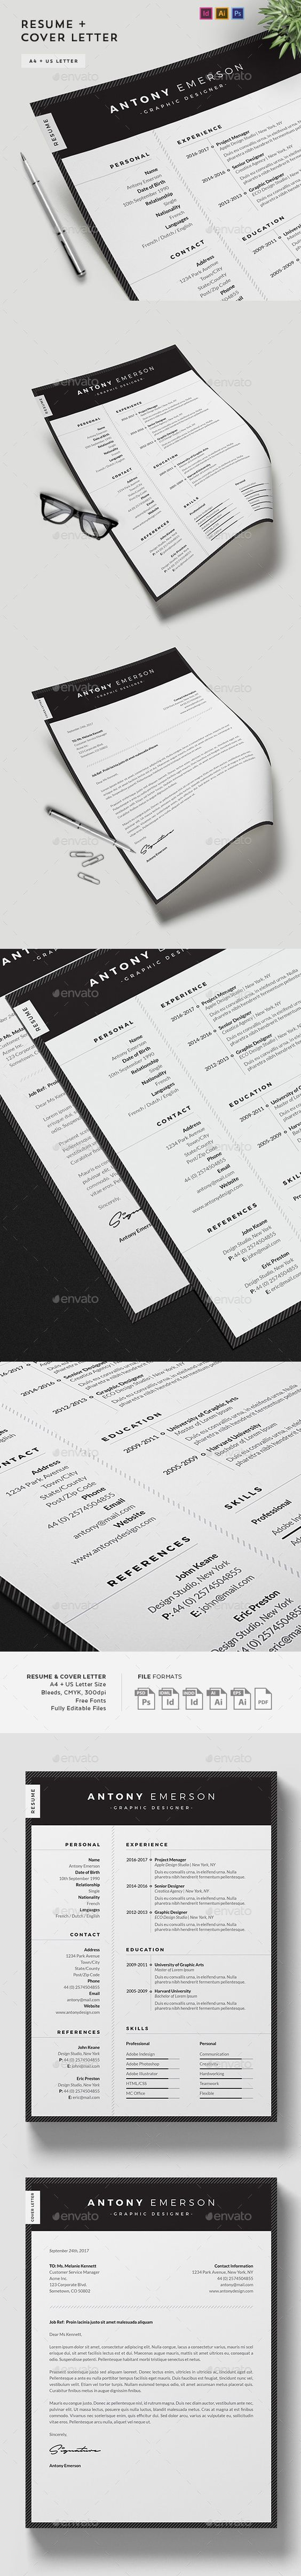 resume cv template professional resume resume writing and buy resume cv template by agape z on graphicriver resume cv amp cover letter template professional minimal and clean resume template for job seekers